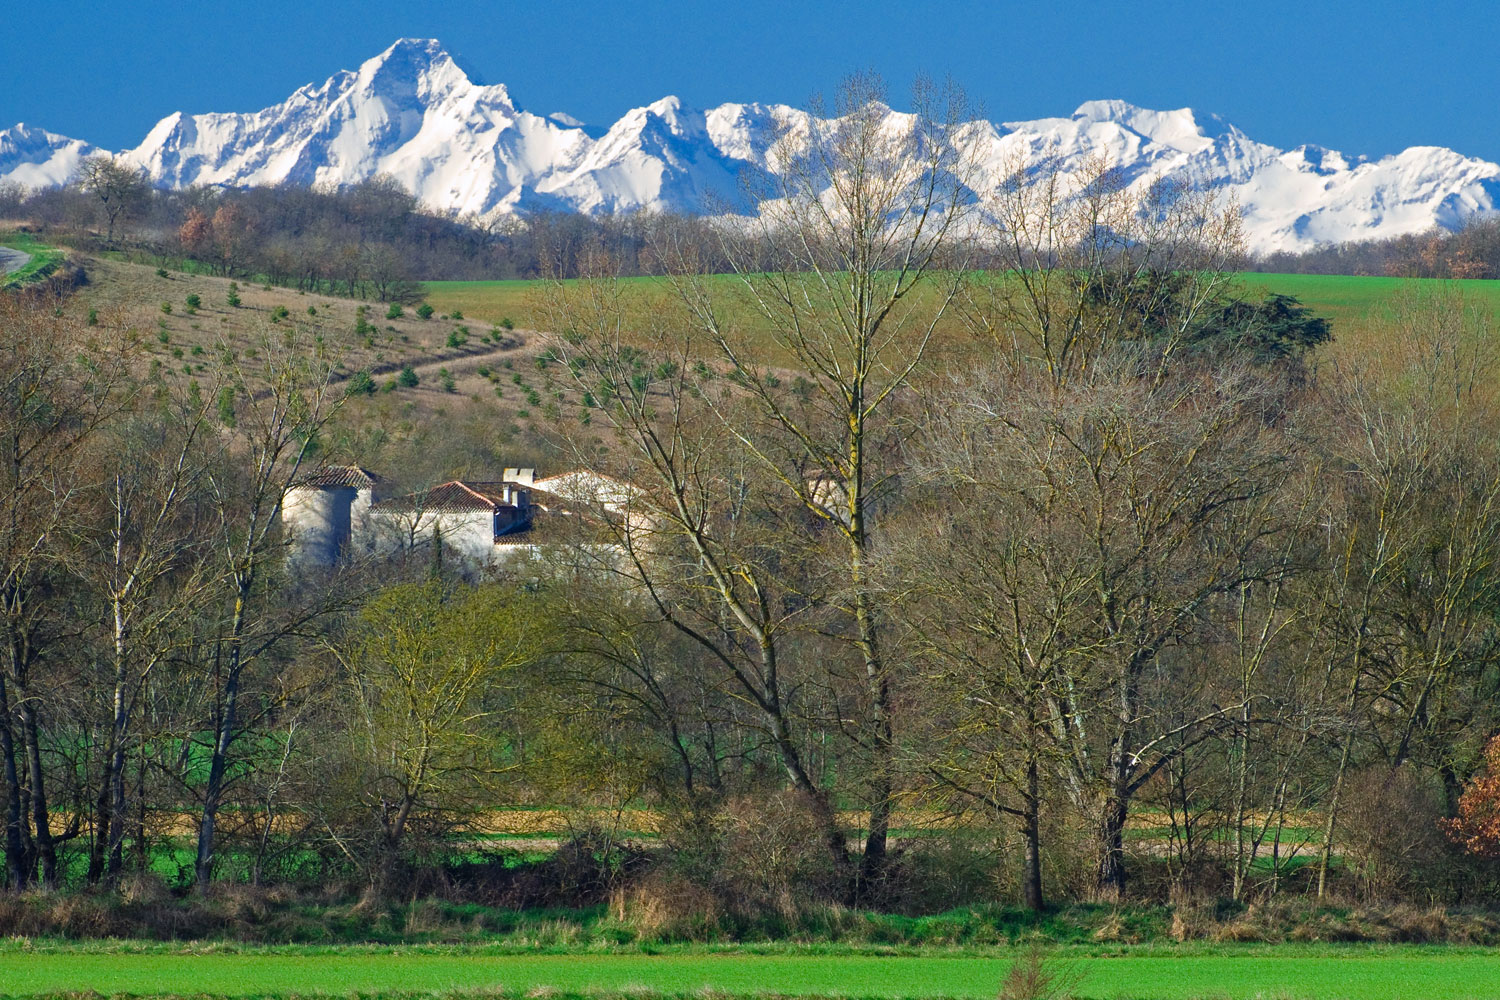 Vue sur les Pyrénées et le chateau de la commanderie / View of the Pyrenees and the Commanderie Castle